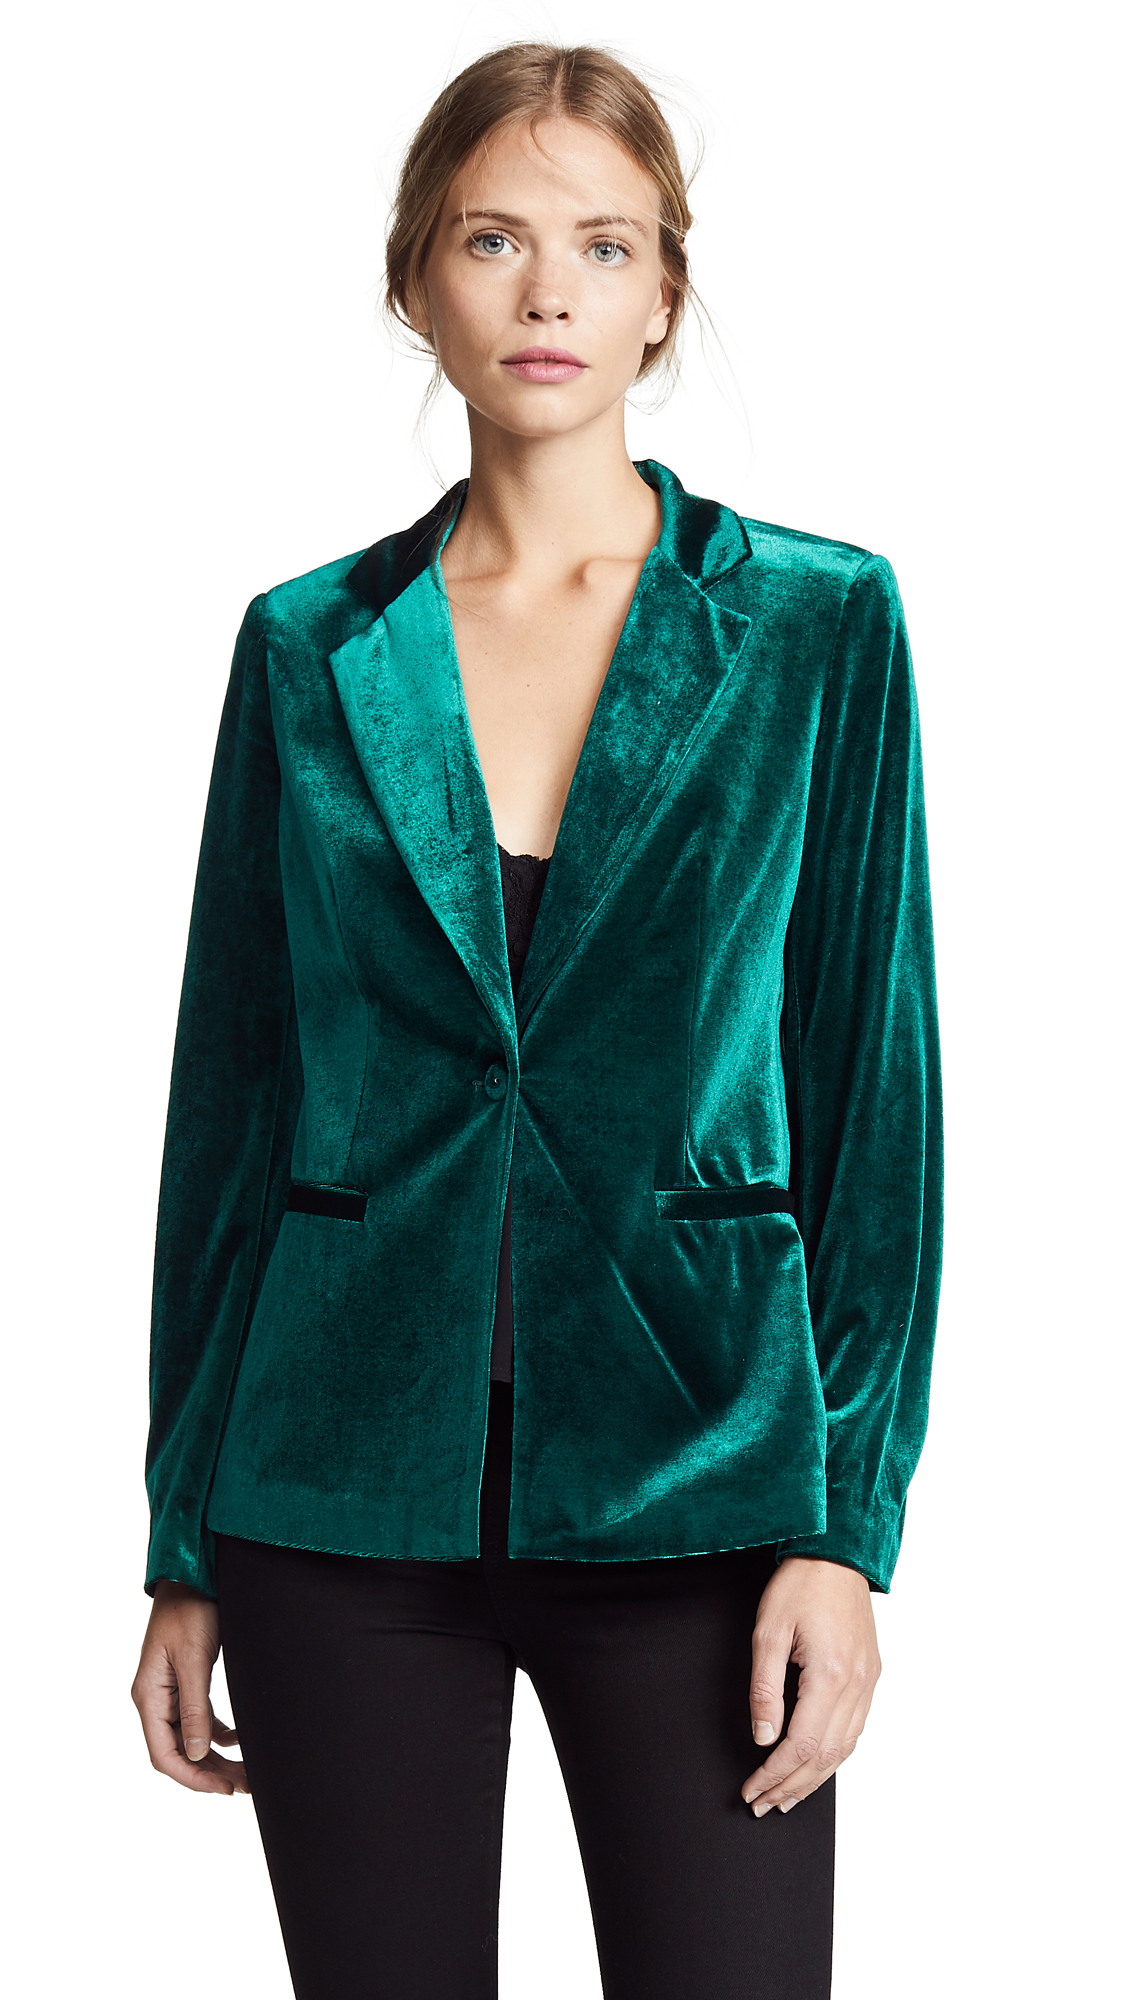 YUMI KIM Trail Blazer Jacket in Jewel Emerald